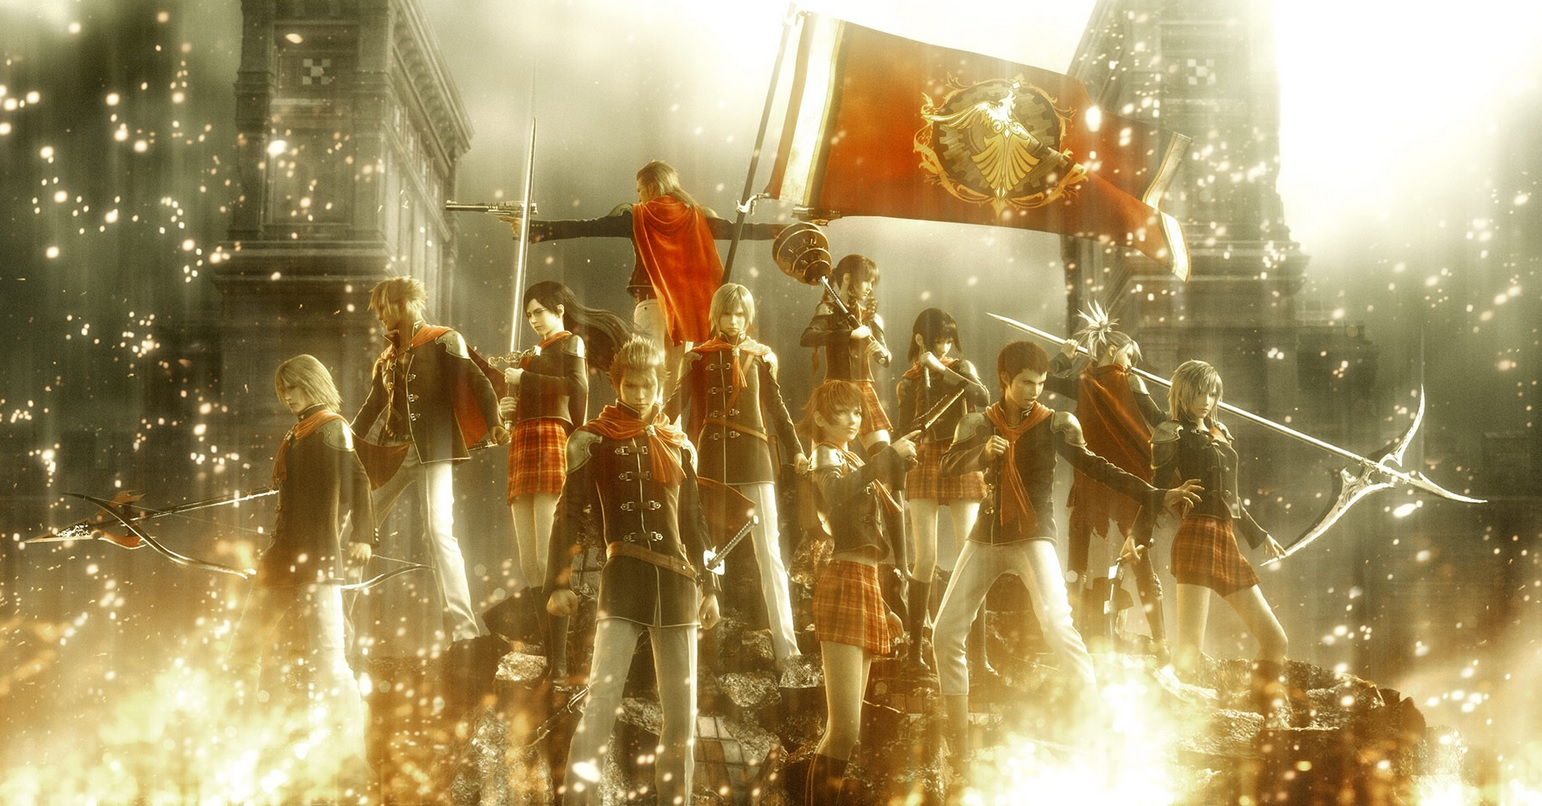 Final Fantasy Type-0 HD Badass Team Zero CG Wallpaper